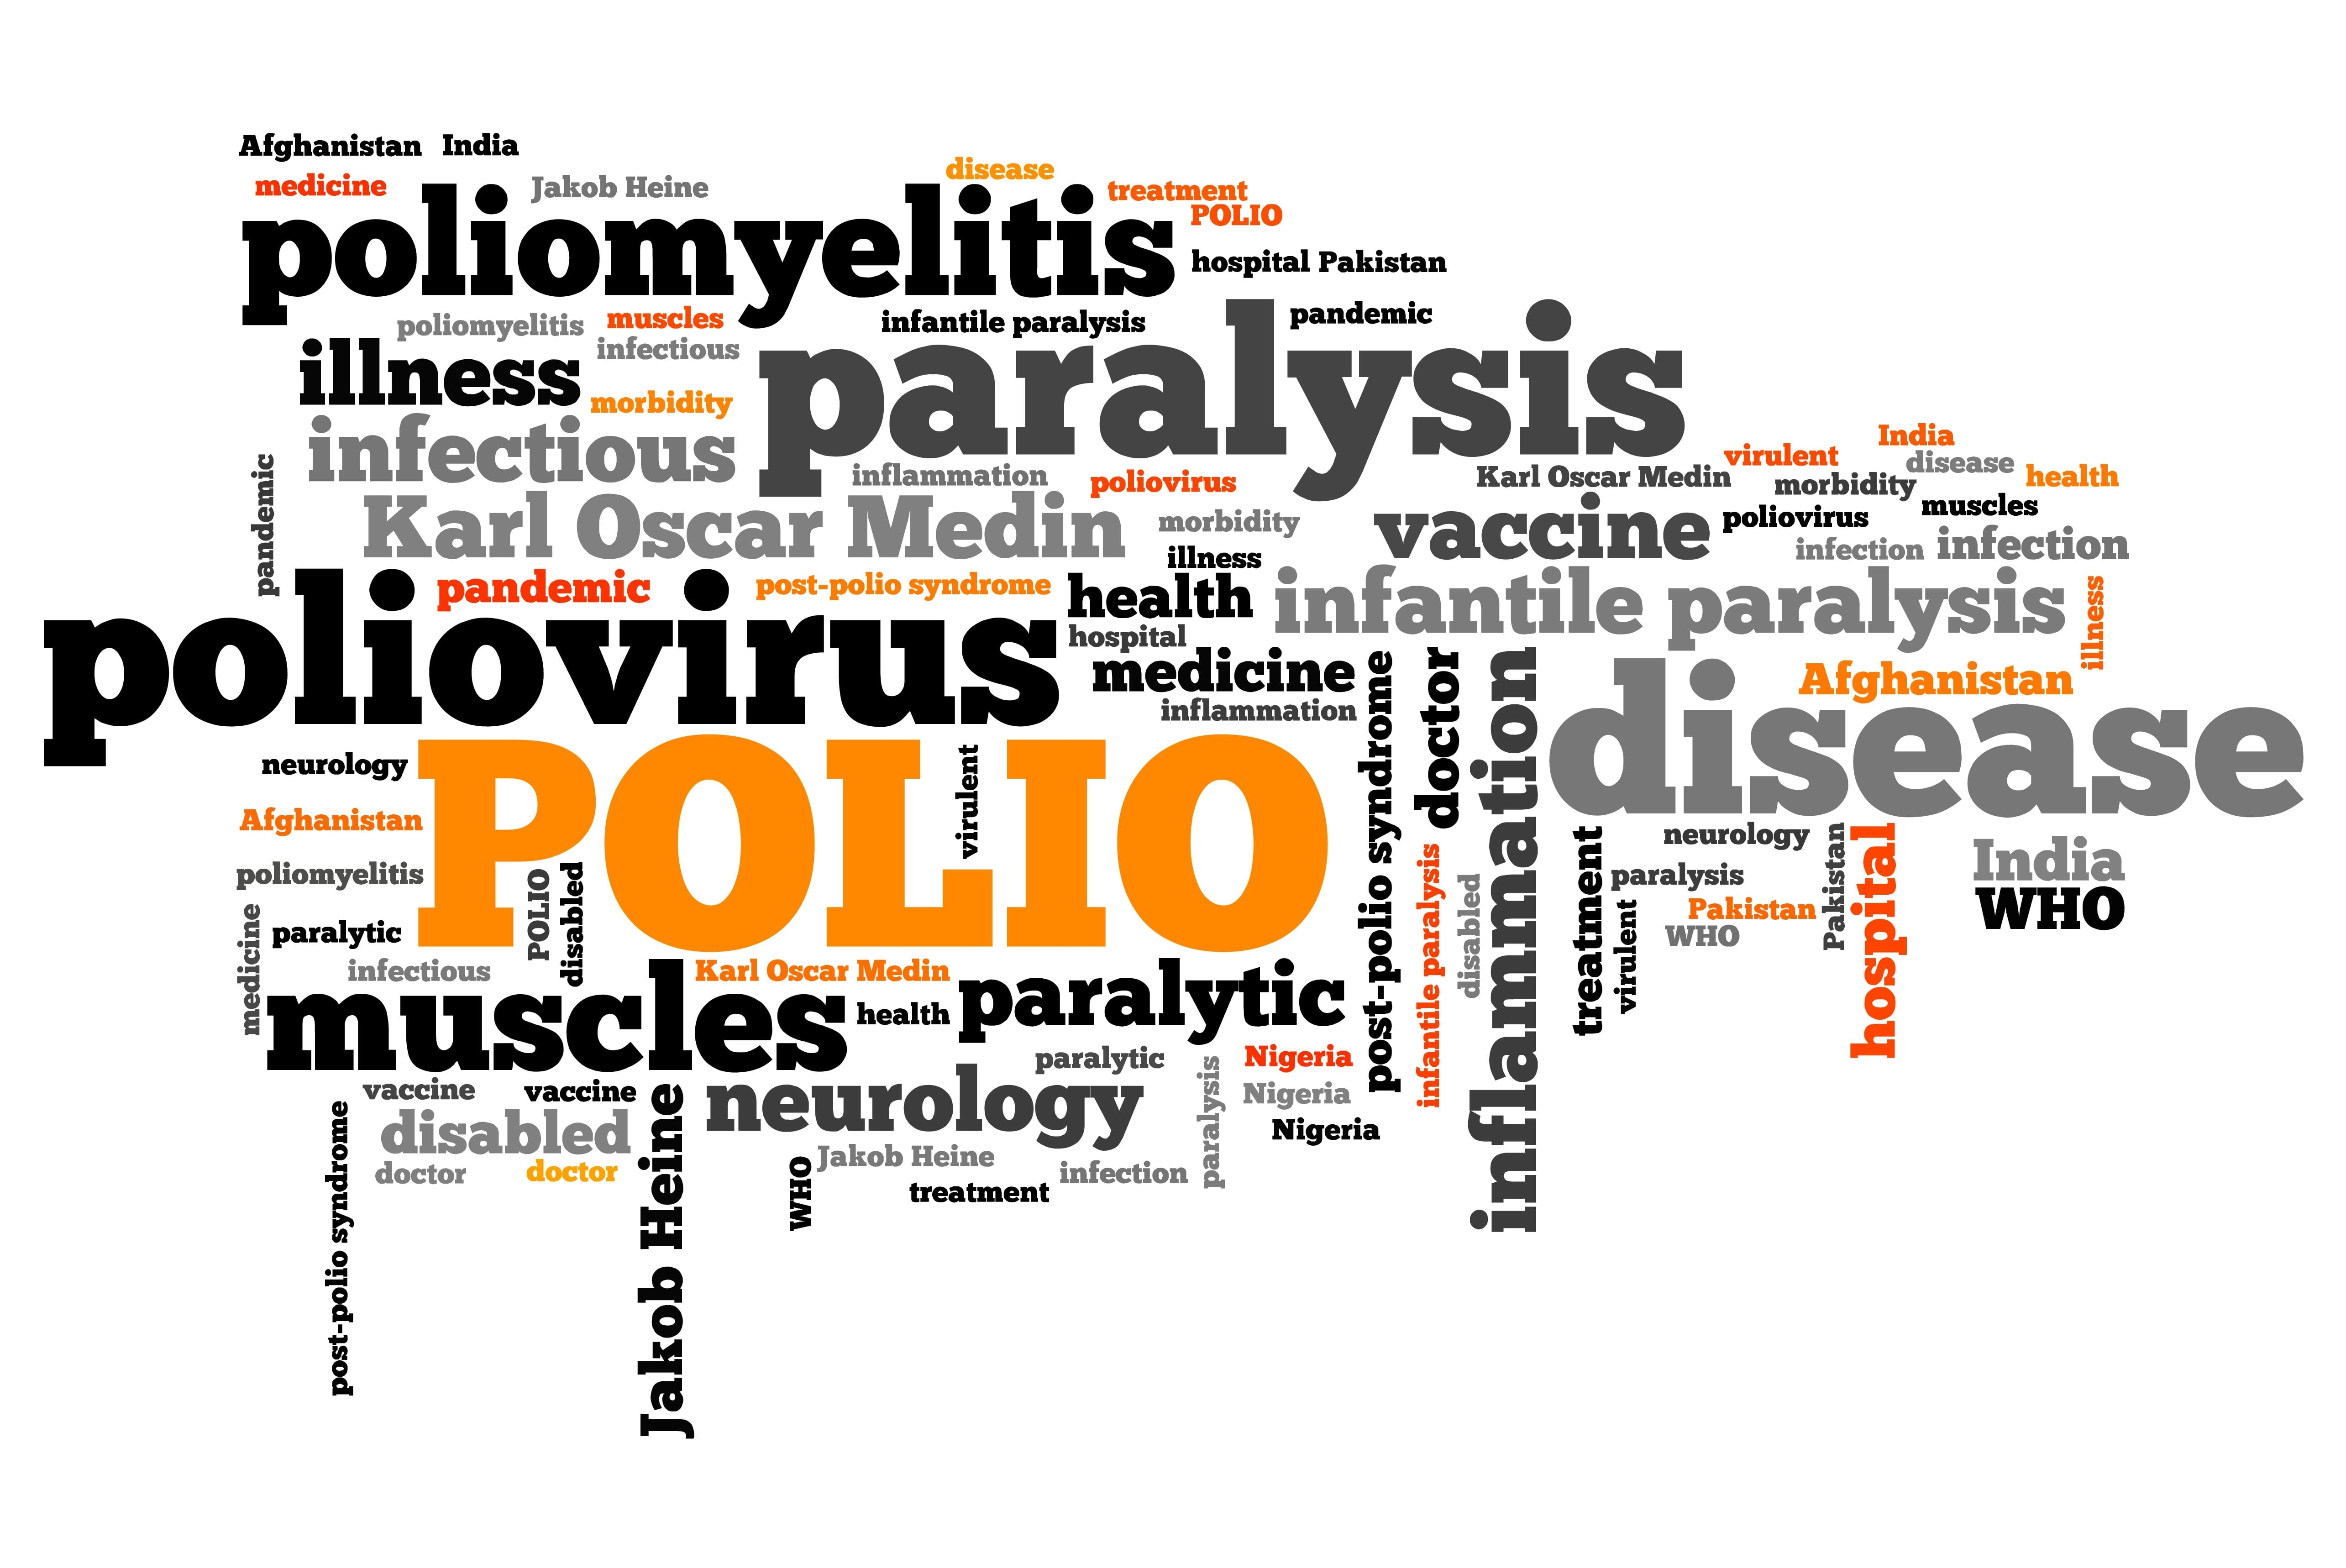 October 24th World Polio Day | End Polio Now